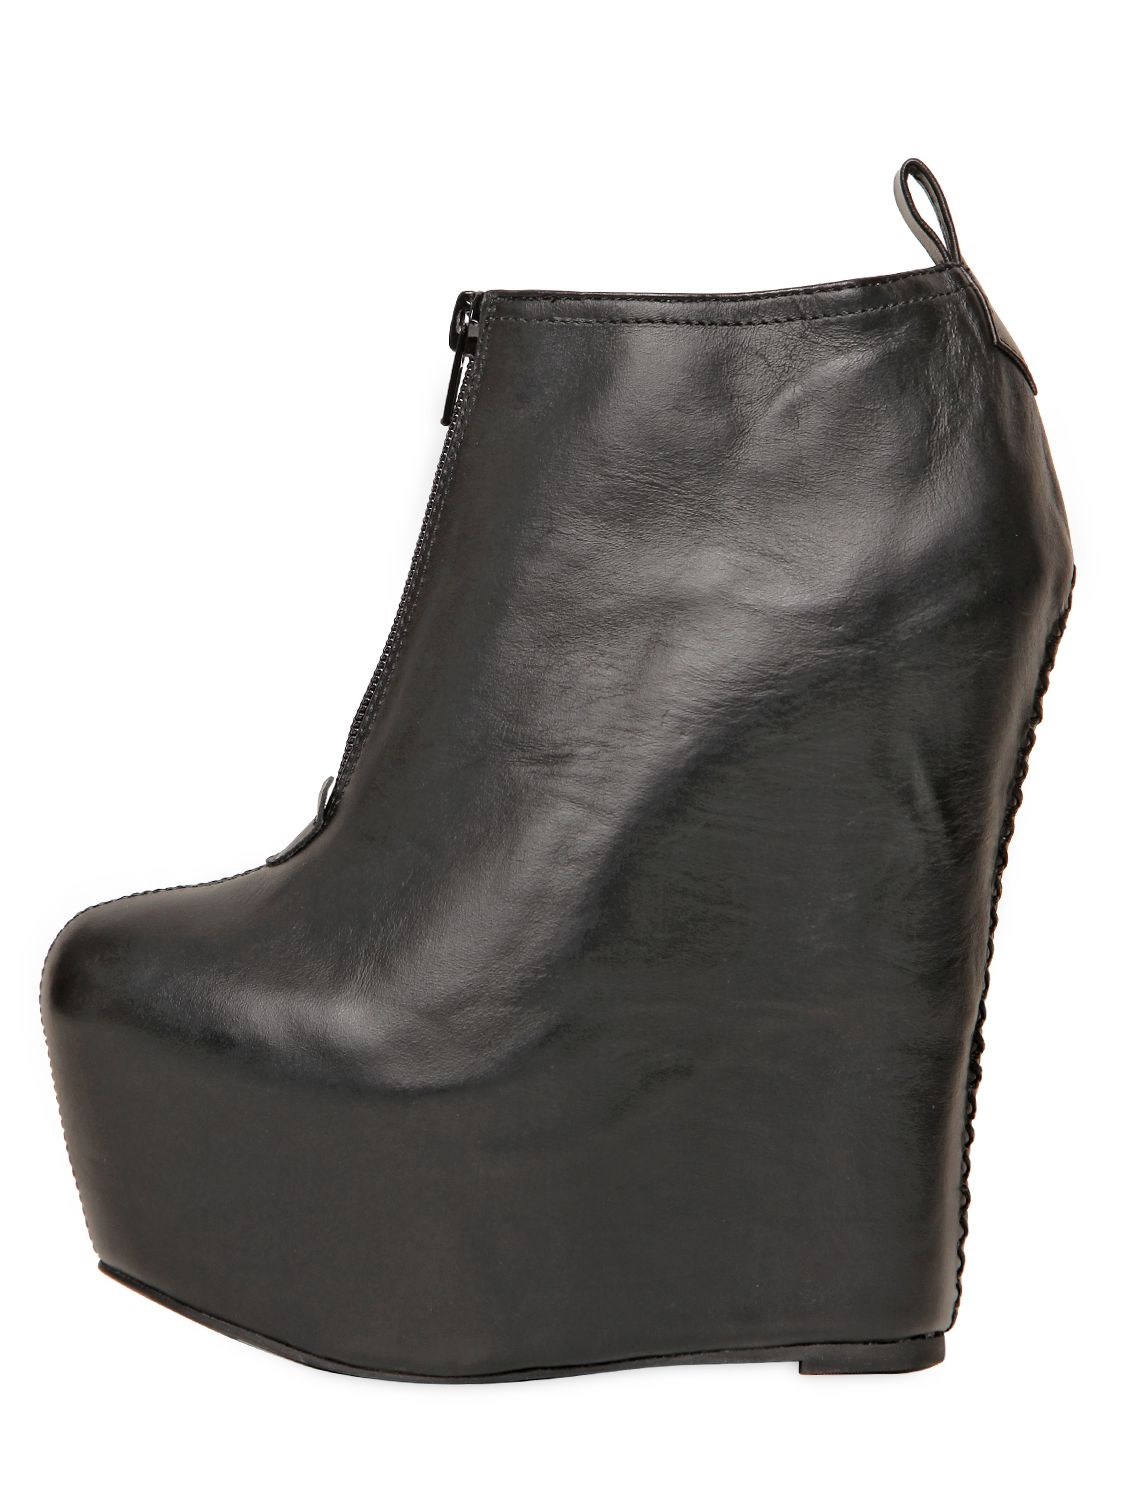 Jeffrey campbell 160mm Two Leather Wedge Ankle Boots in Black | Lyst